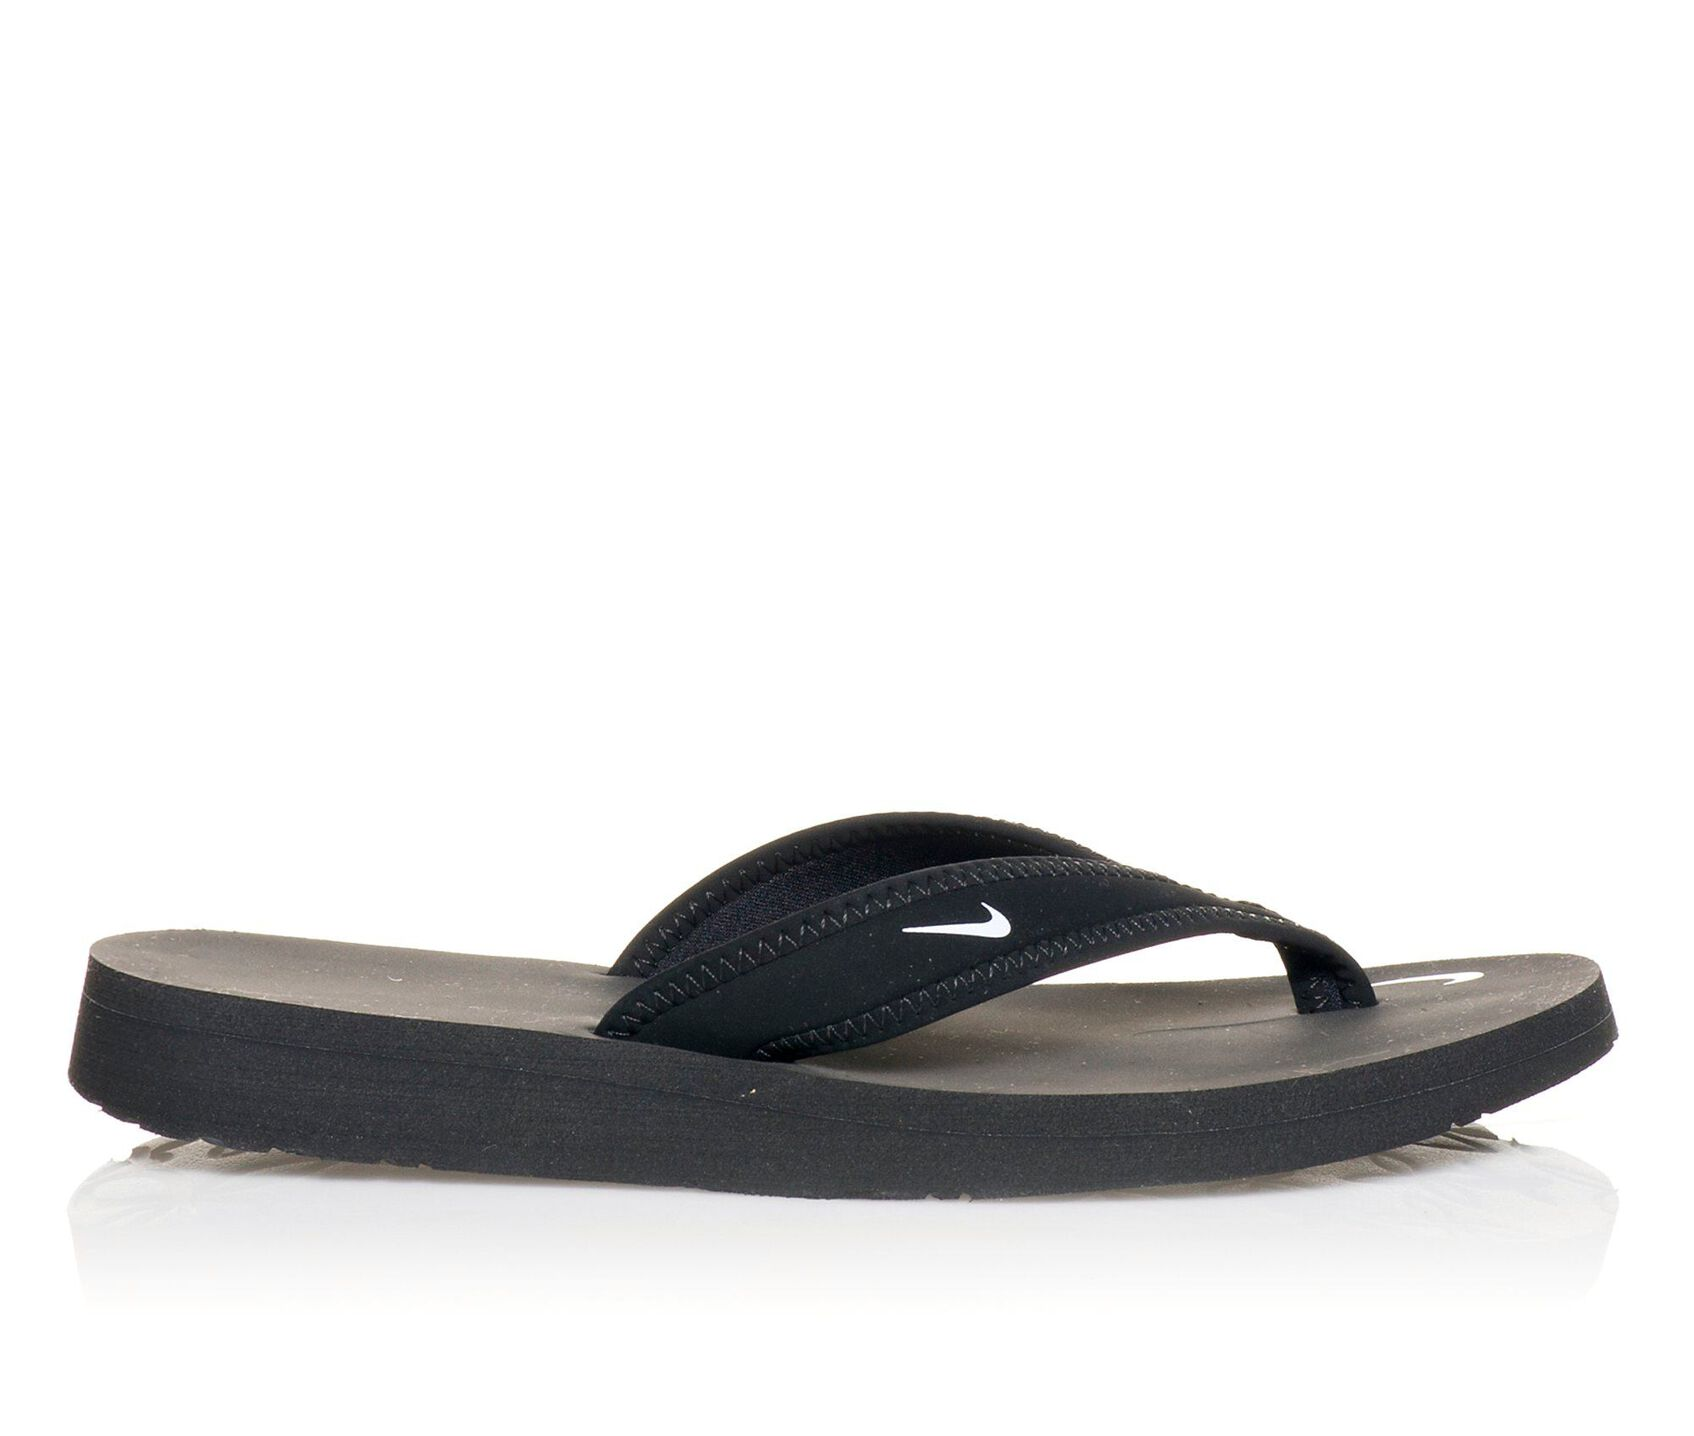 a8d72f950c82 ... Nike Celso Girl Thong Sport Sandals. Previous